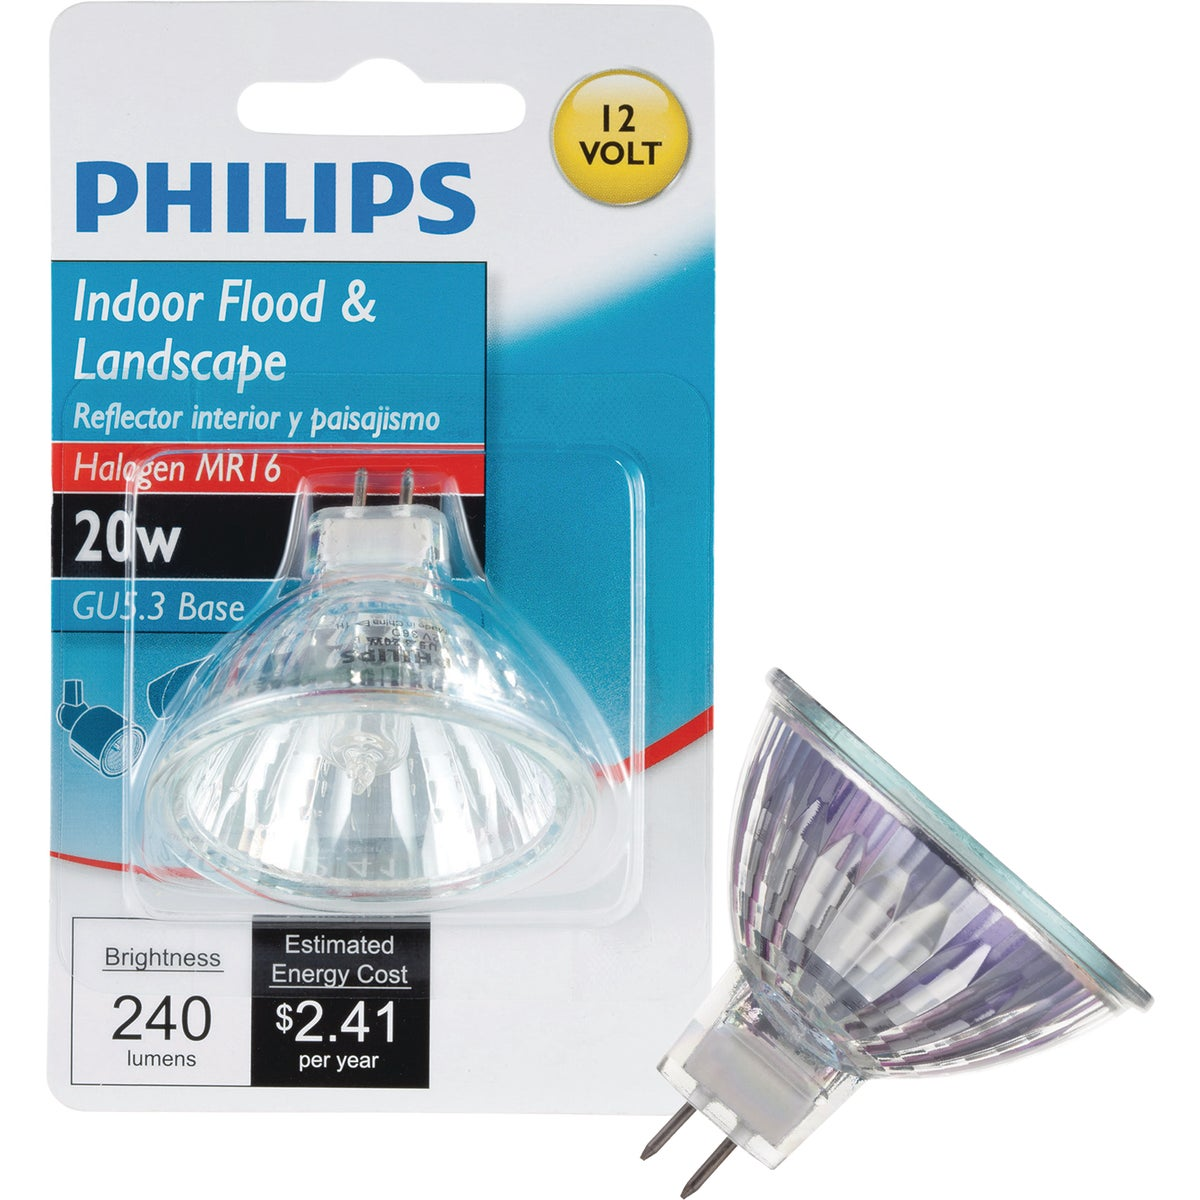 20W MR16 FLOOD BULB - 21455 by G E Lighting